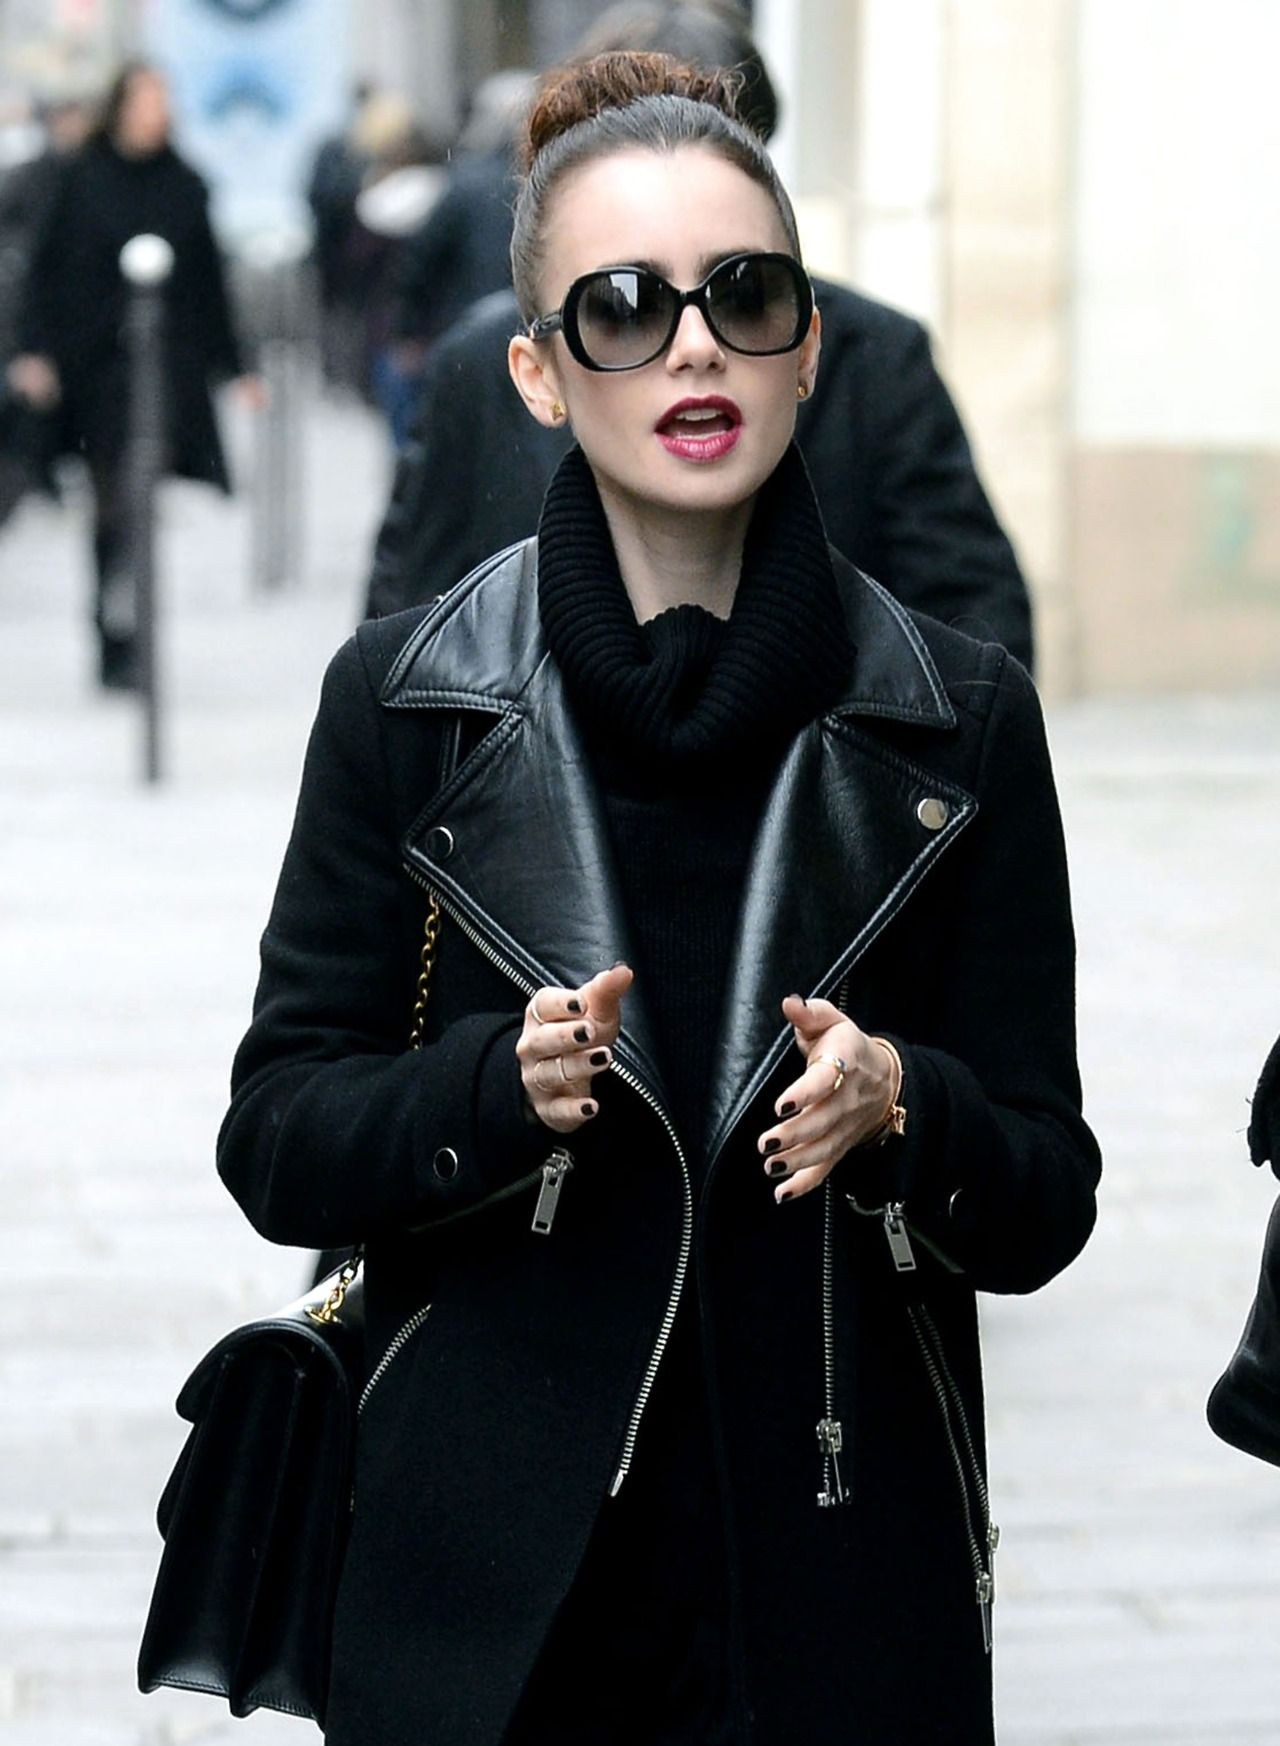 Garderobe Jacke Chanel Stylish Jacket And Glasses Lily Collins